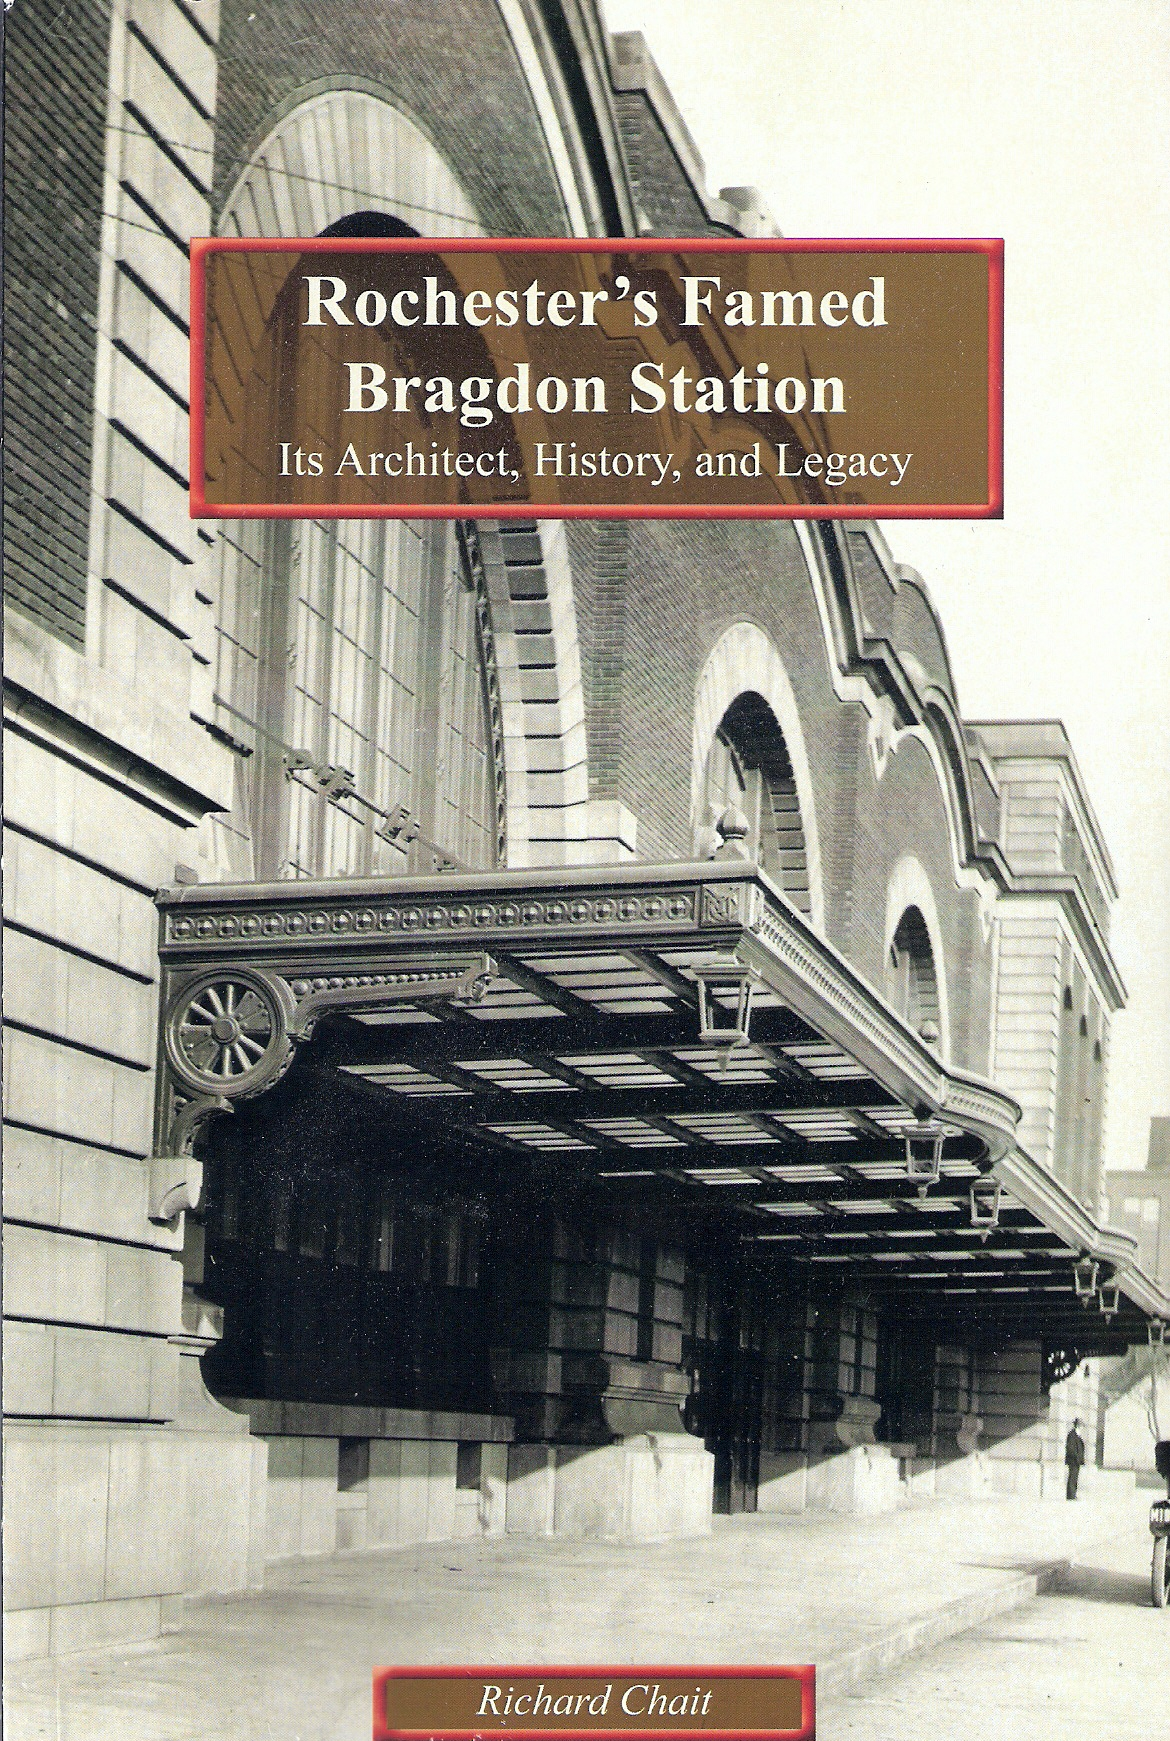 Rochester's Rich History: Claude Bragdon and His Rochester Legacies